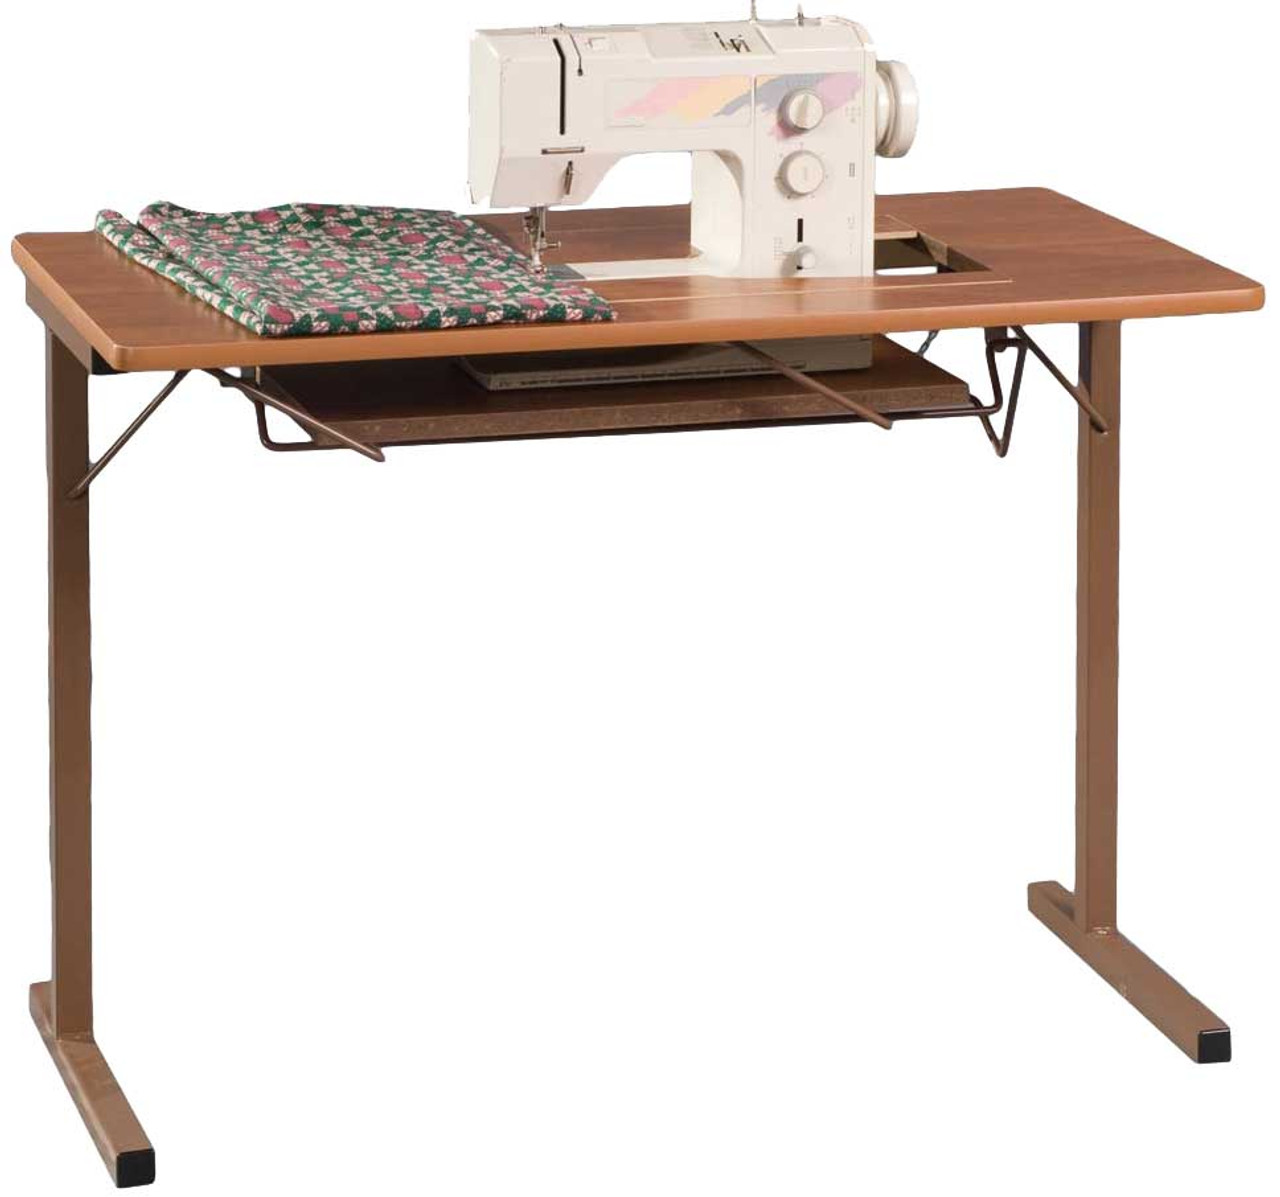 uk availability 8f9db efbf3 Fashion Sewing Cabinets 299 Foldable Sewing Machine Table Rustic Maple